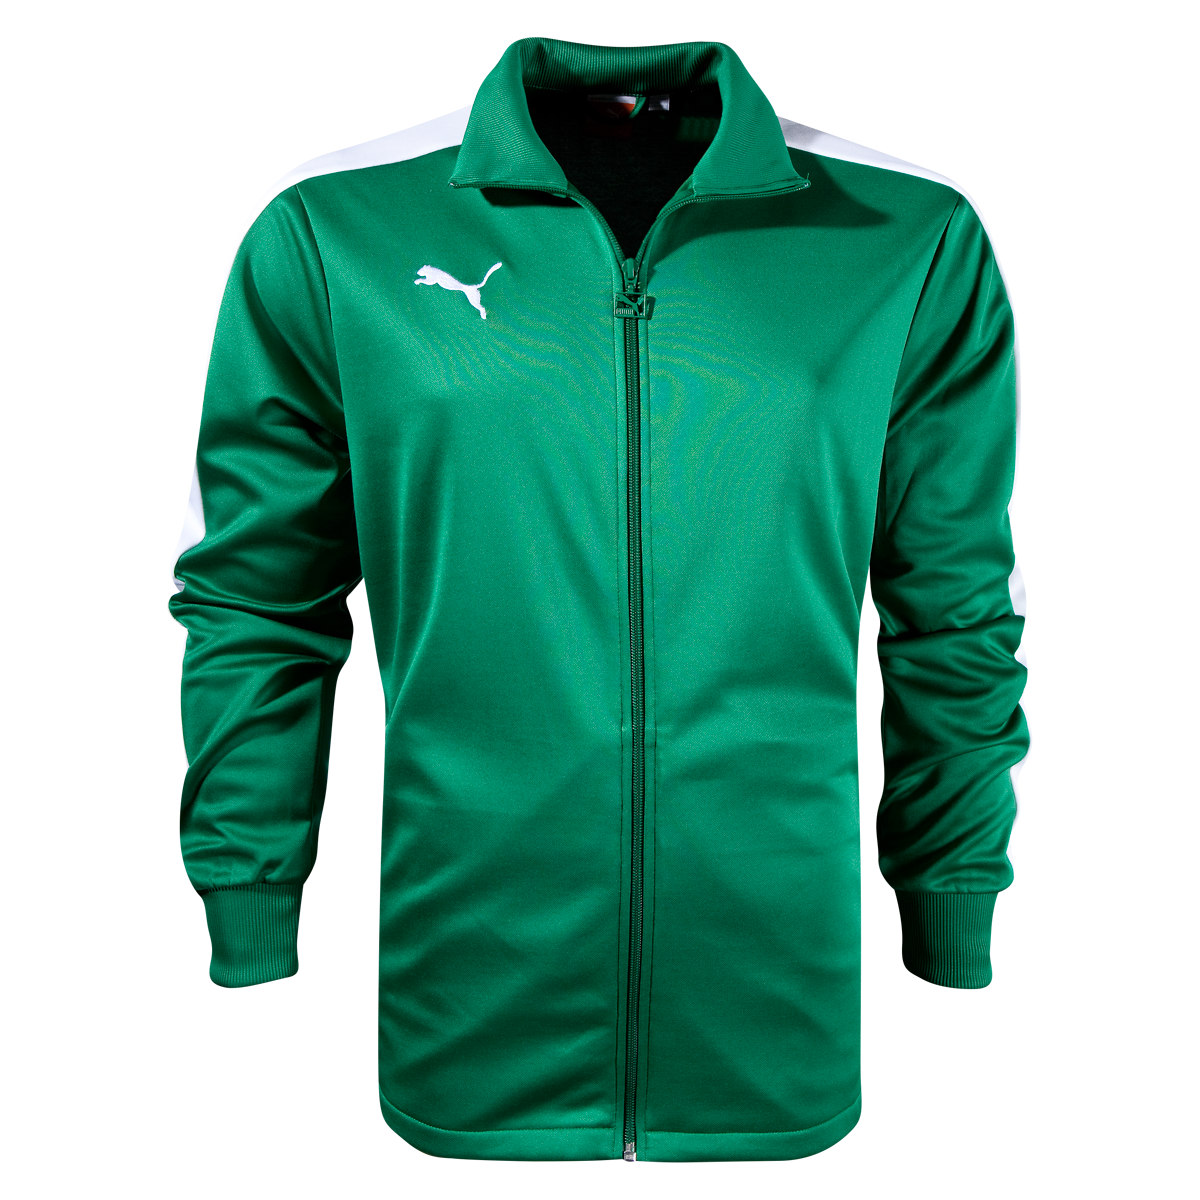 PUMA Icon Walk Out Jacketdk green/white2xl Jackets